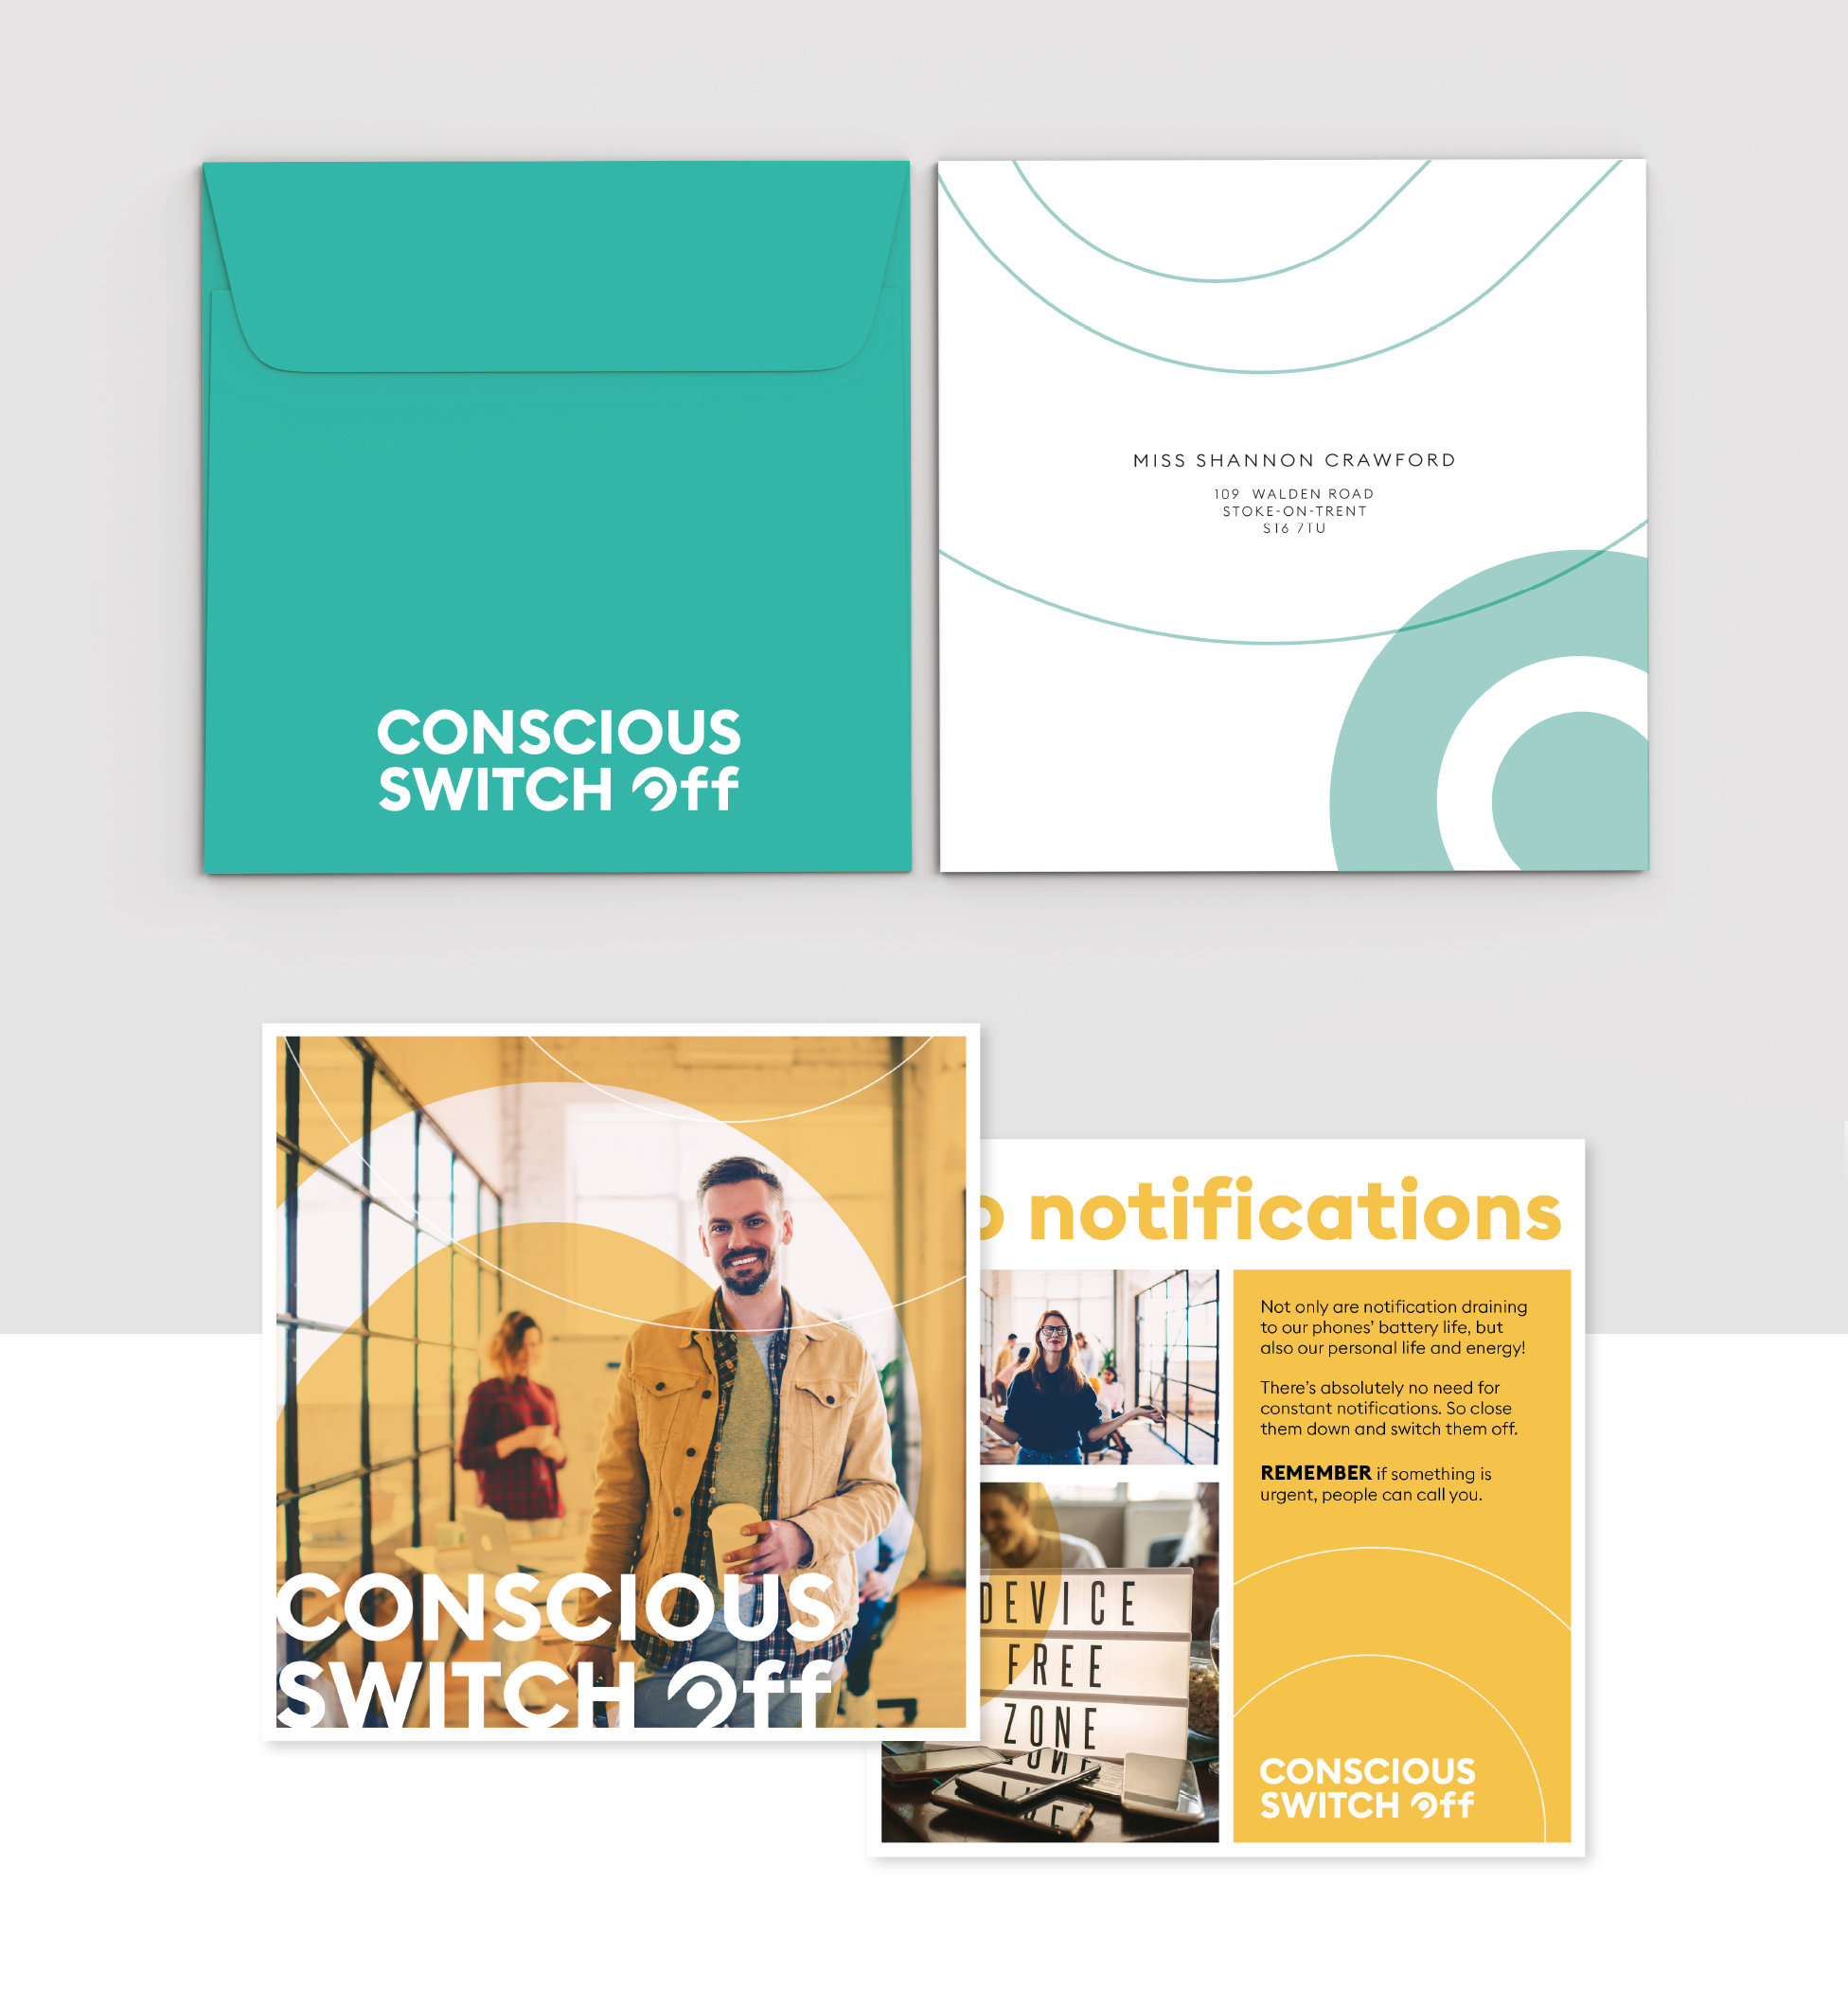 Advice and guidance leaflet for conscious switch off